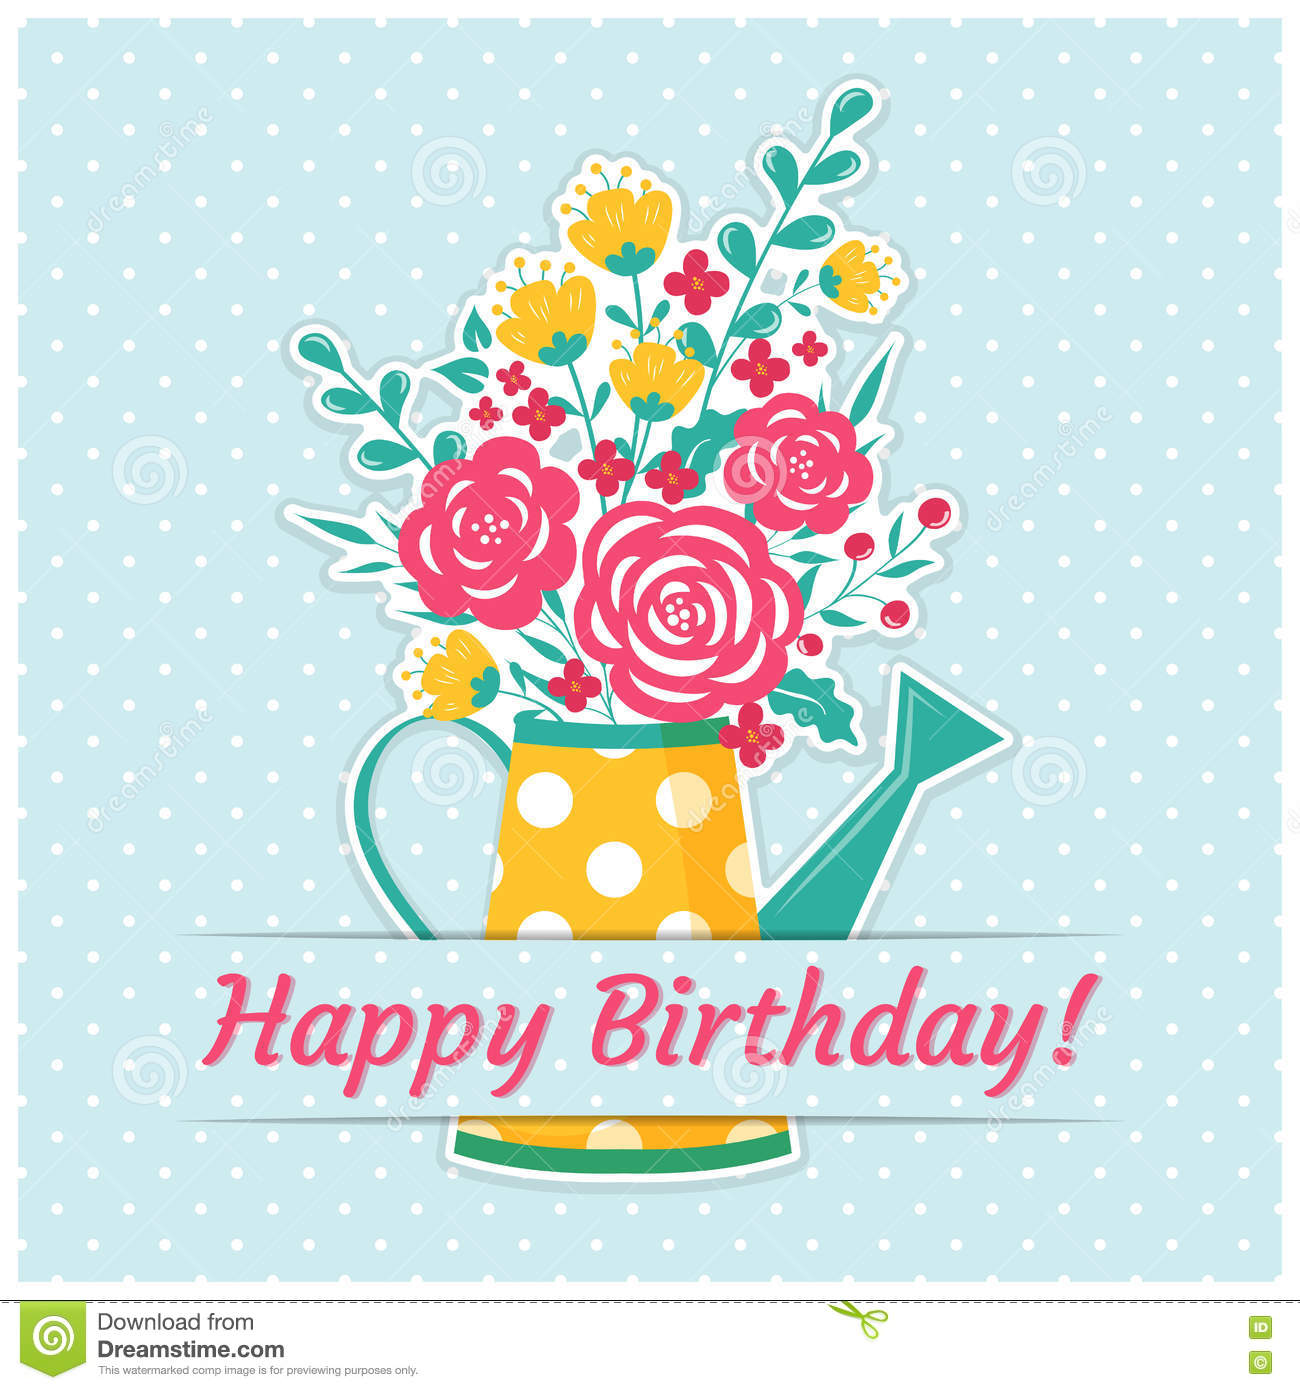 Birthday Card With Watering Can And Flowers Stock Vector